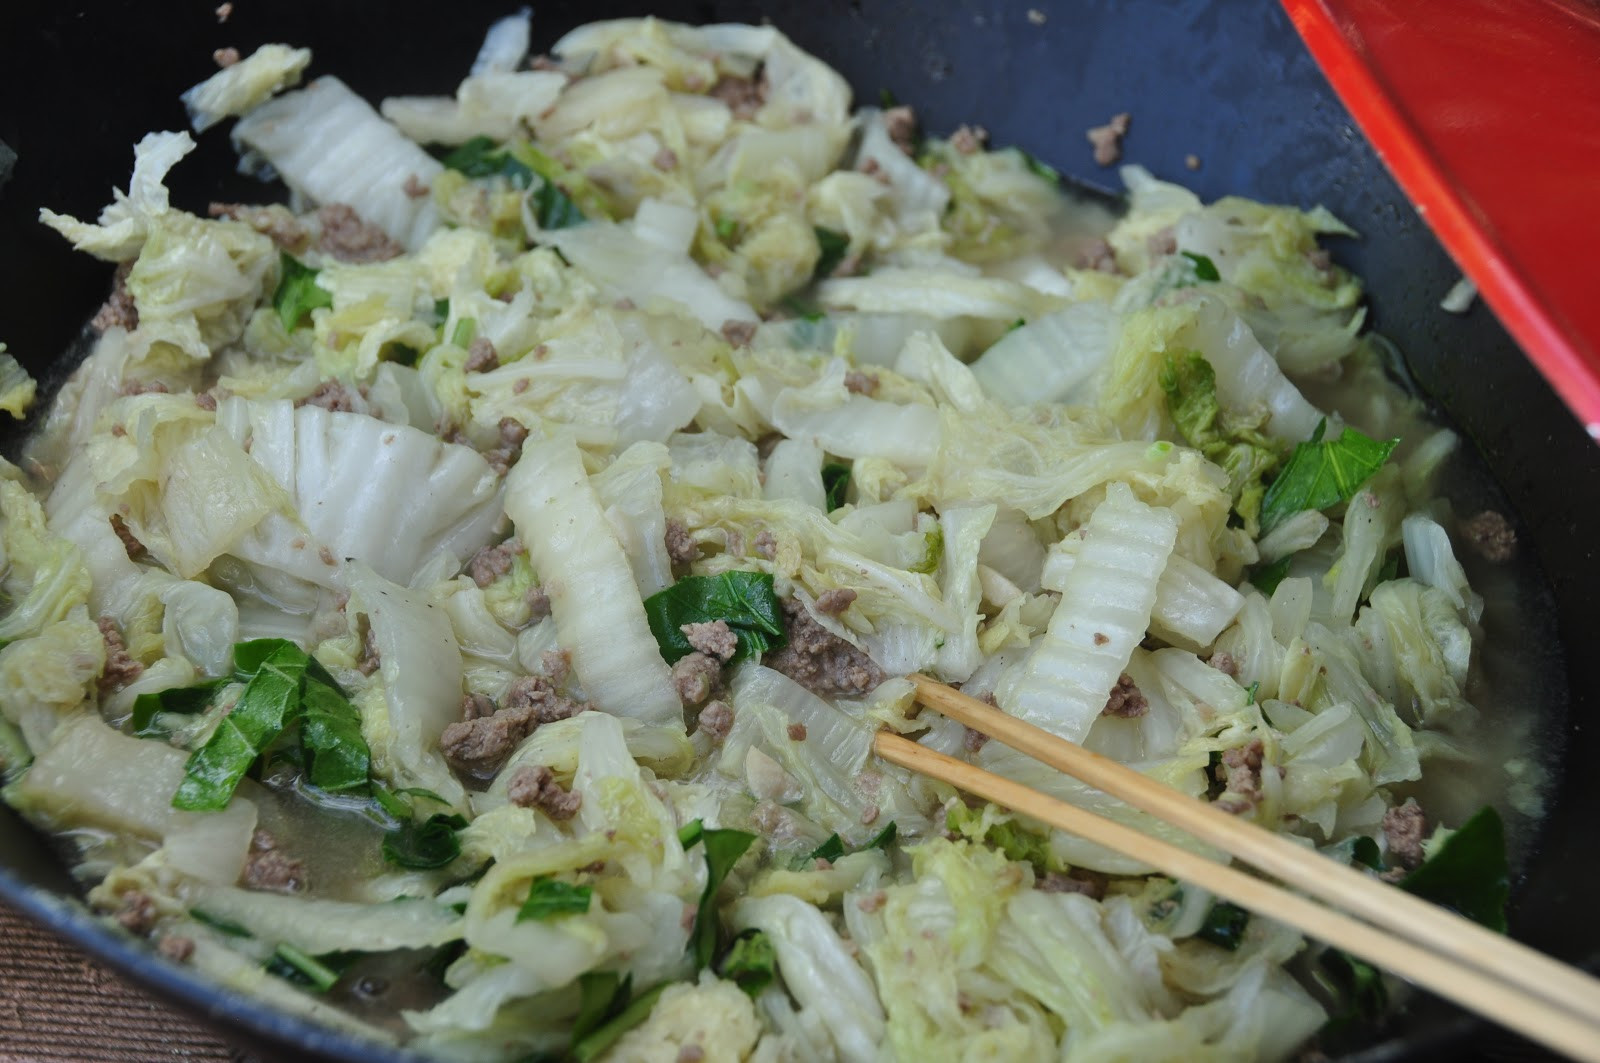 Stir Fry Napa Cabbage  Thanh s Kitchen Stir Fried Napa Cabbage Pepper Leaves